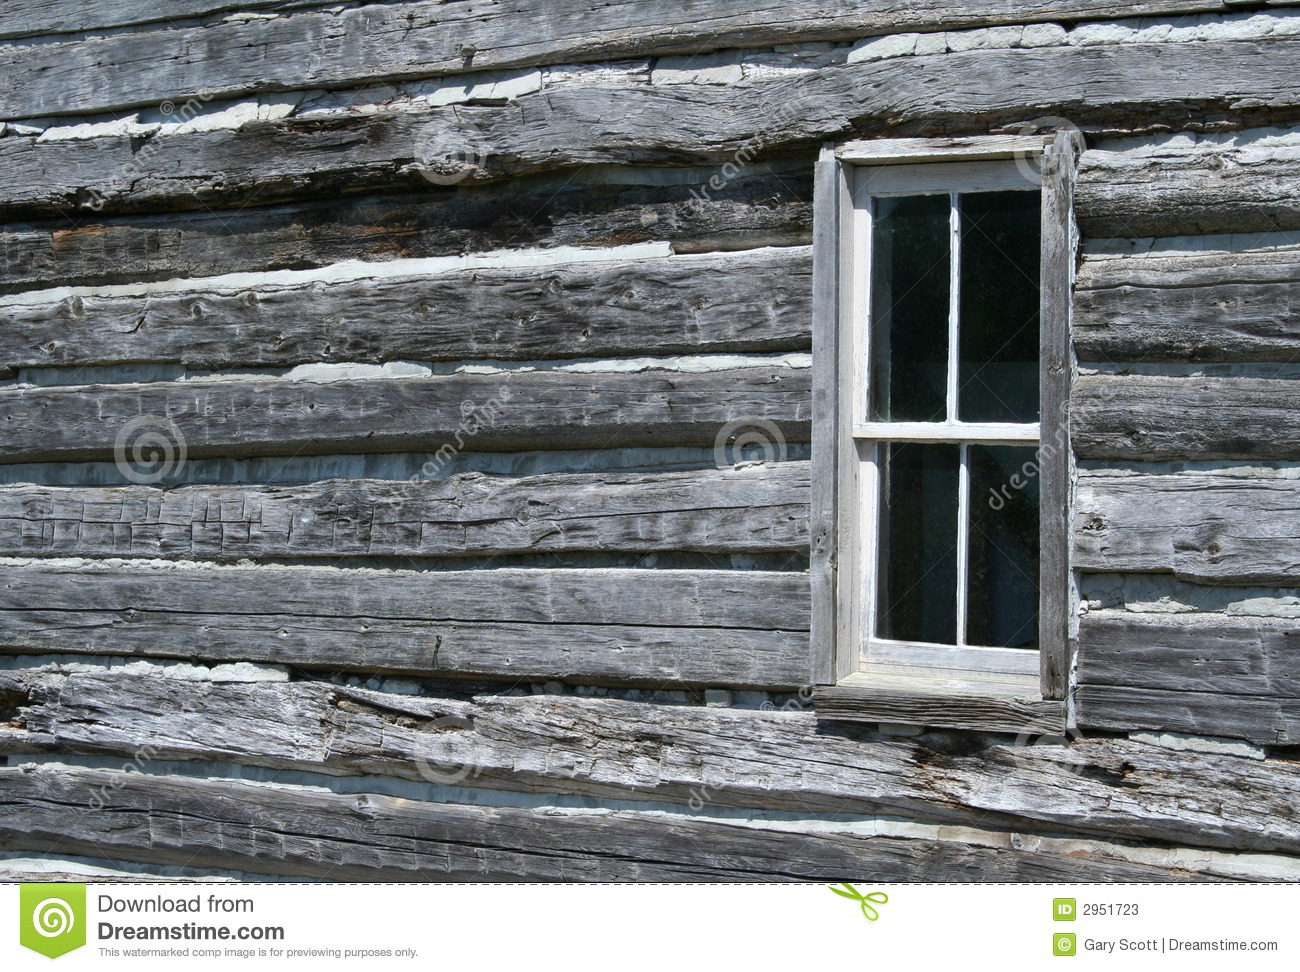 Log cabin window stock photos image 2951723 for Windows for log cabins